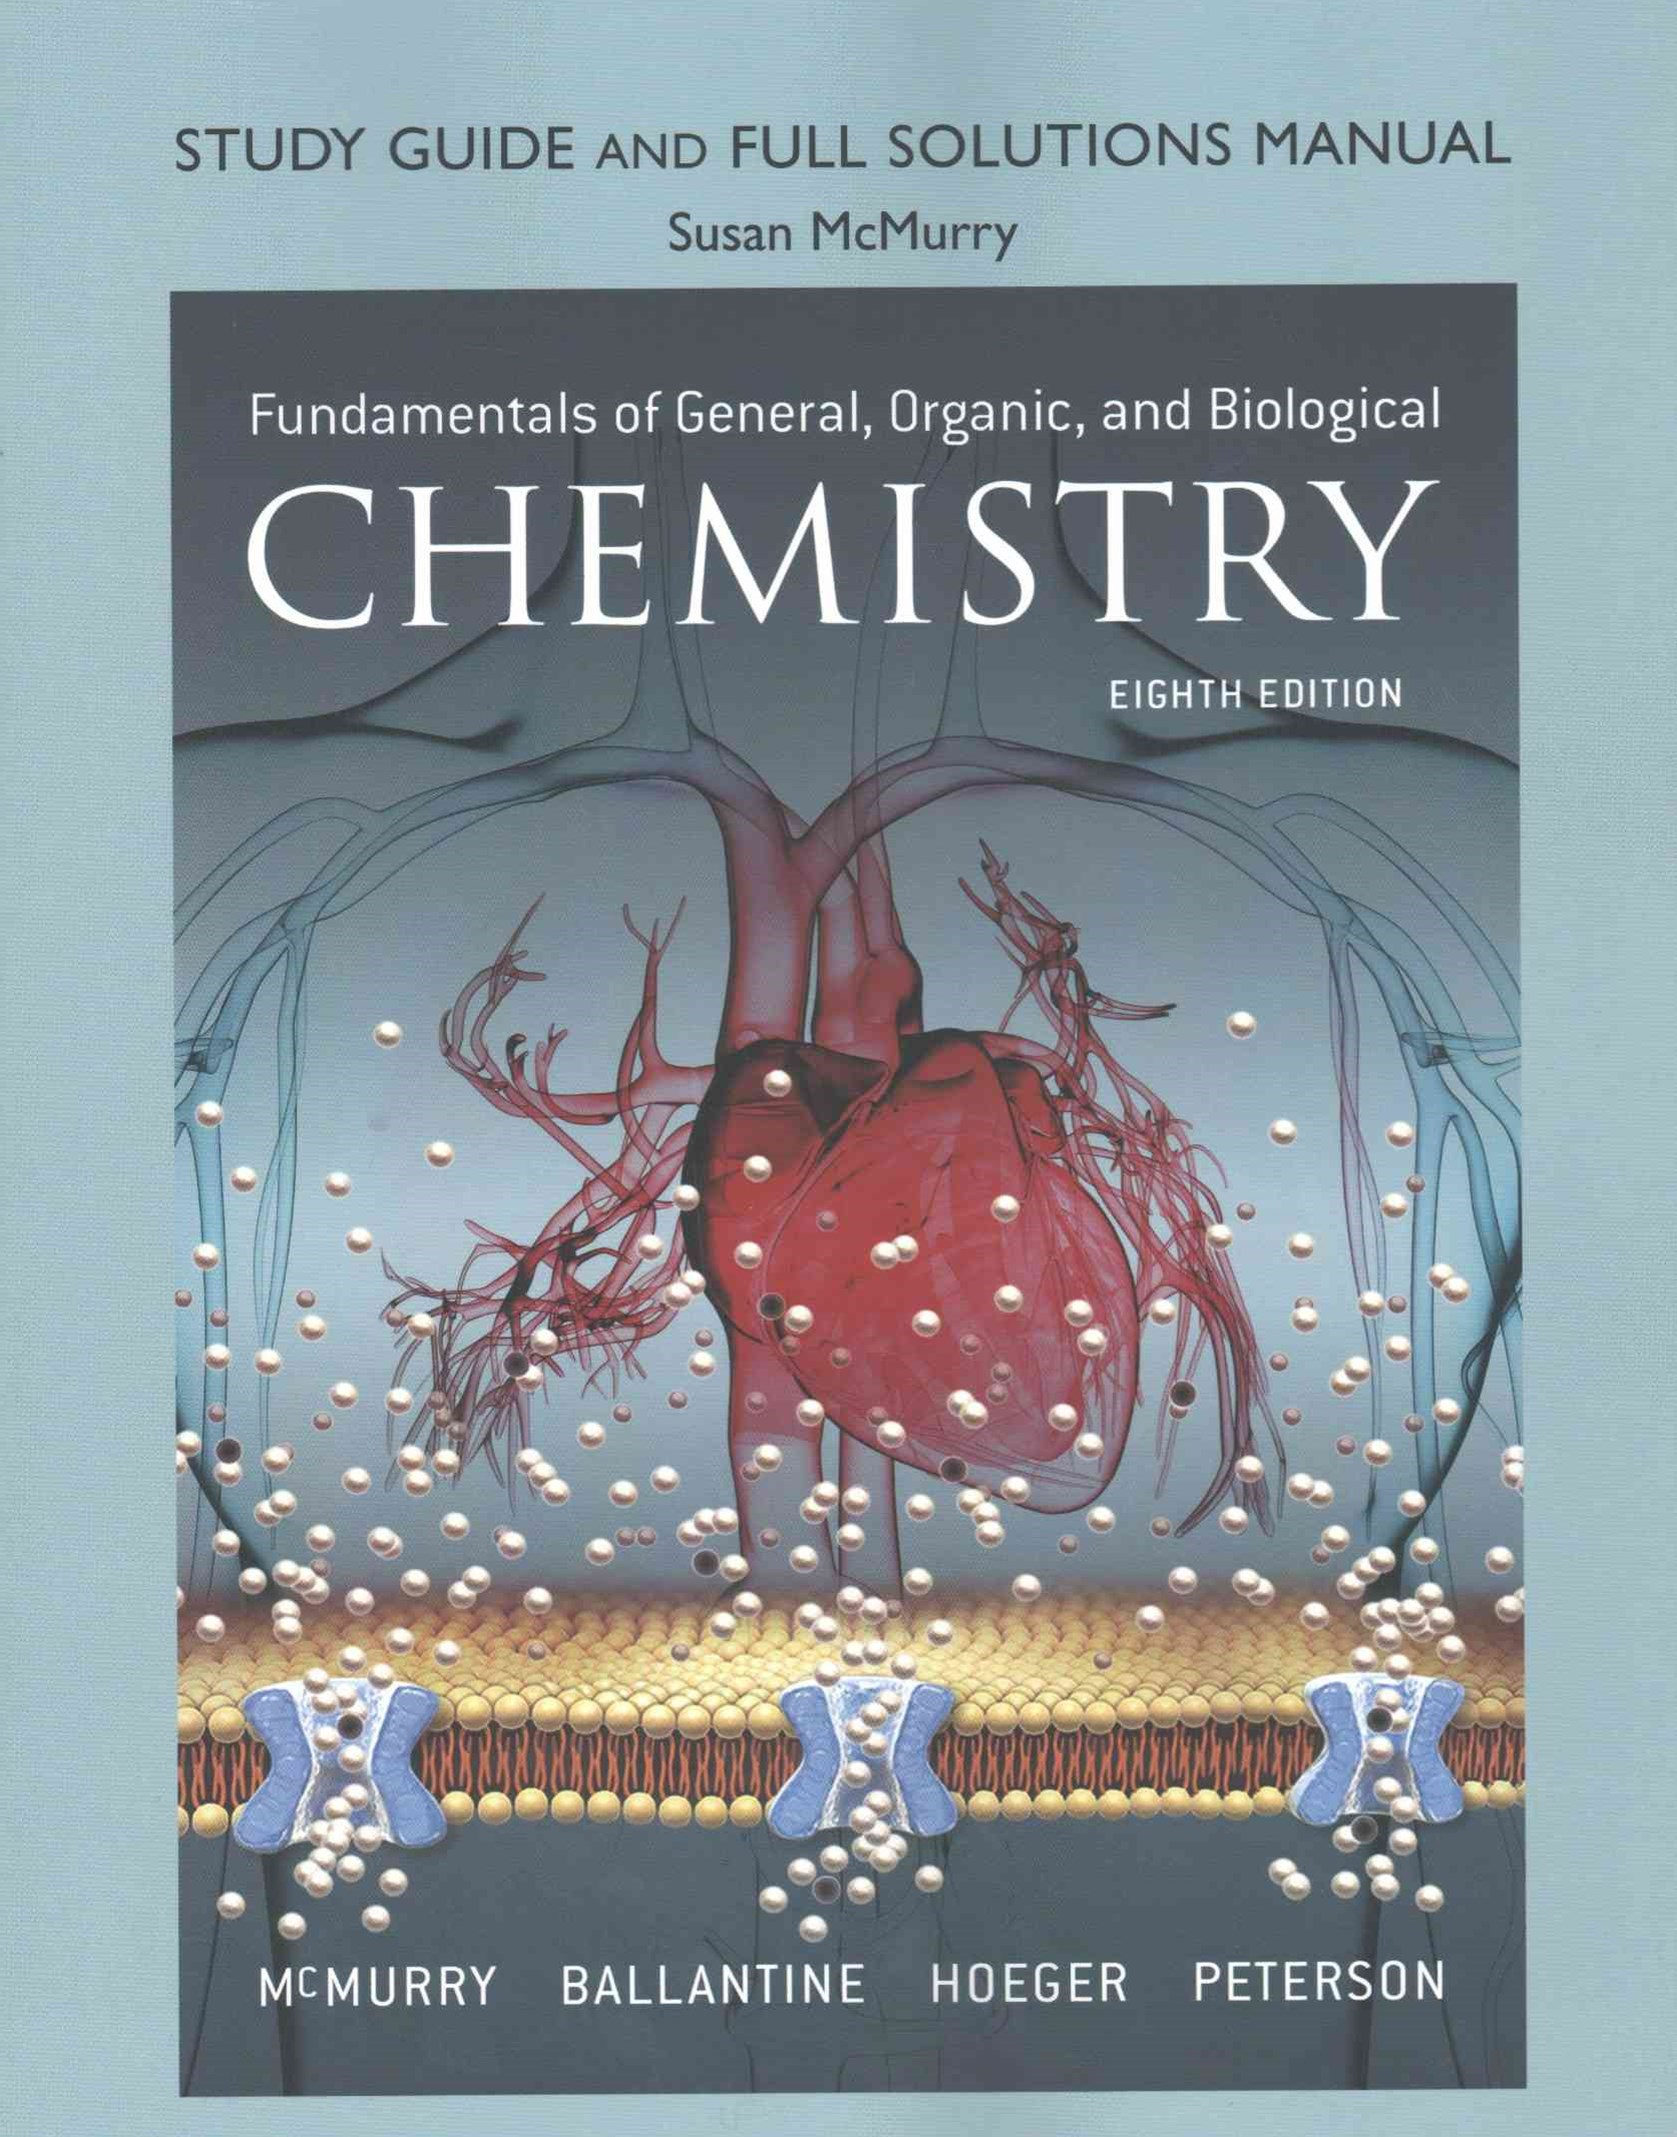 Study Guide and Full Solutions Manual for Fundamentals of General, Organic, and Biological Chemistr